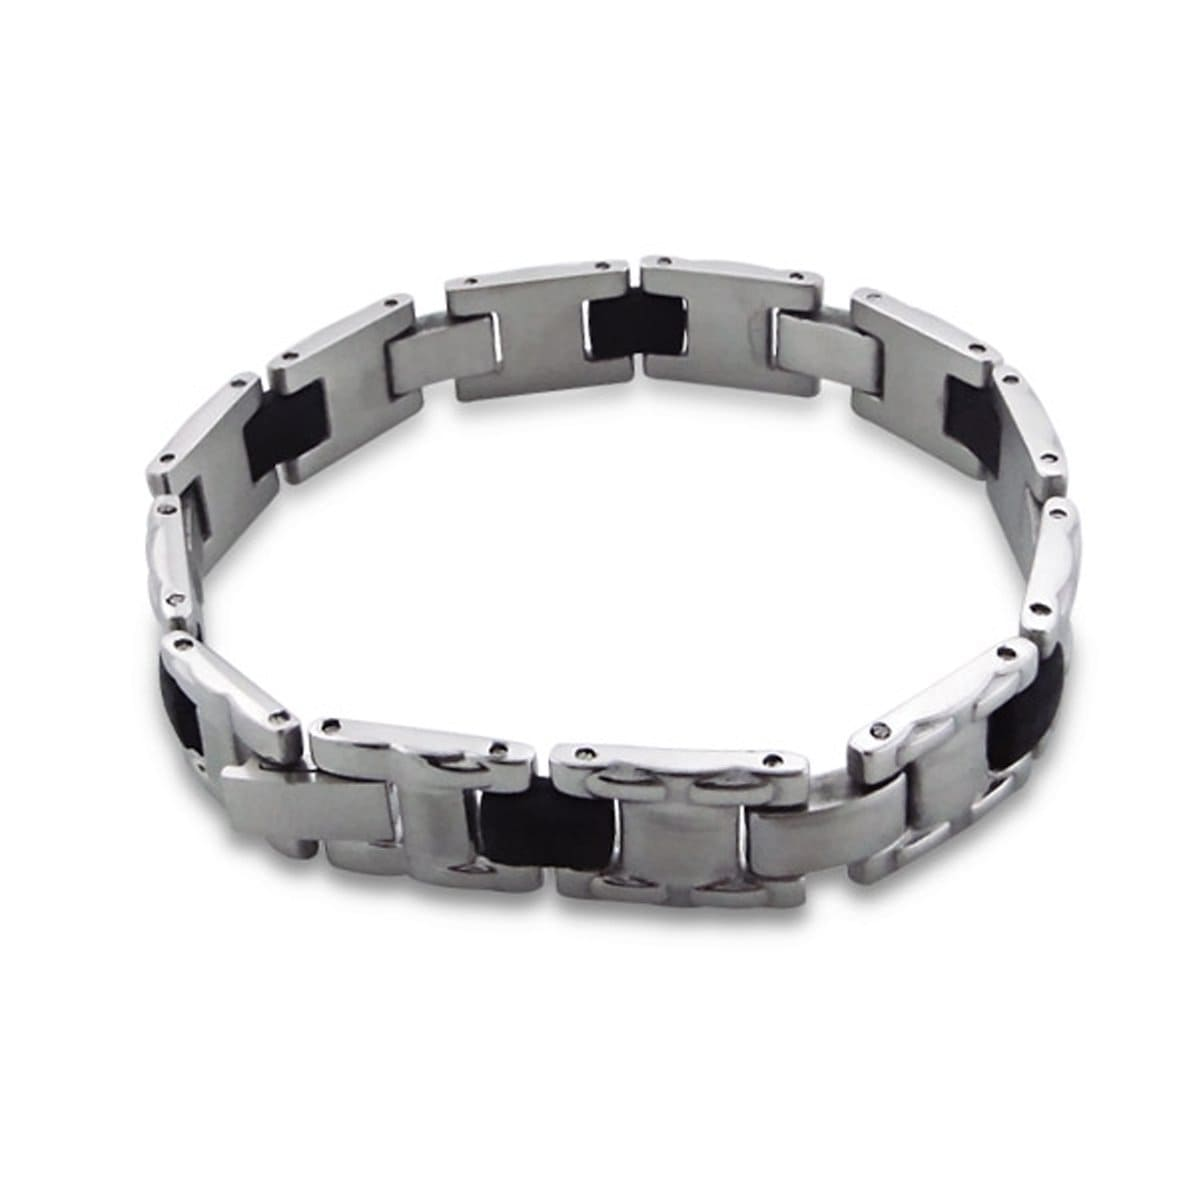 Mens Stainless Steel Bangle Bracelet 20 CM